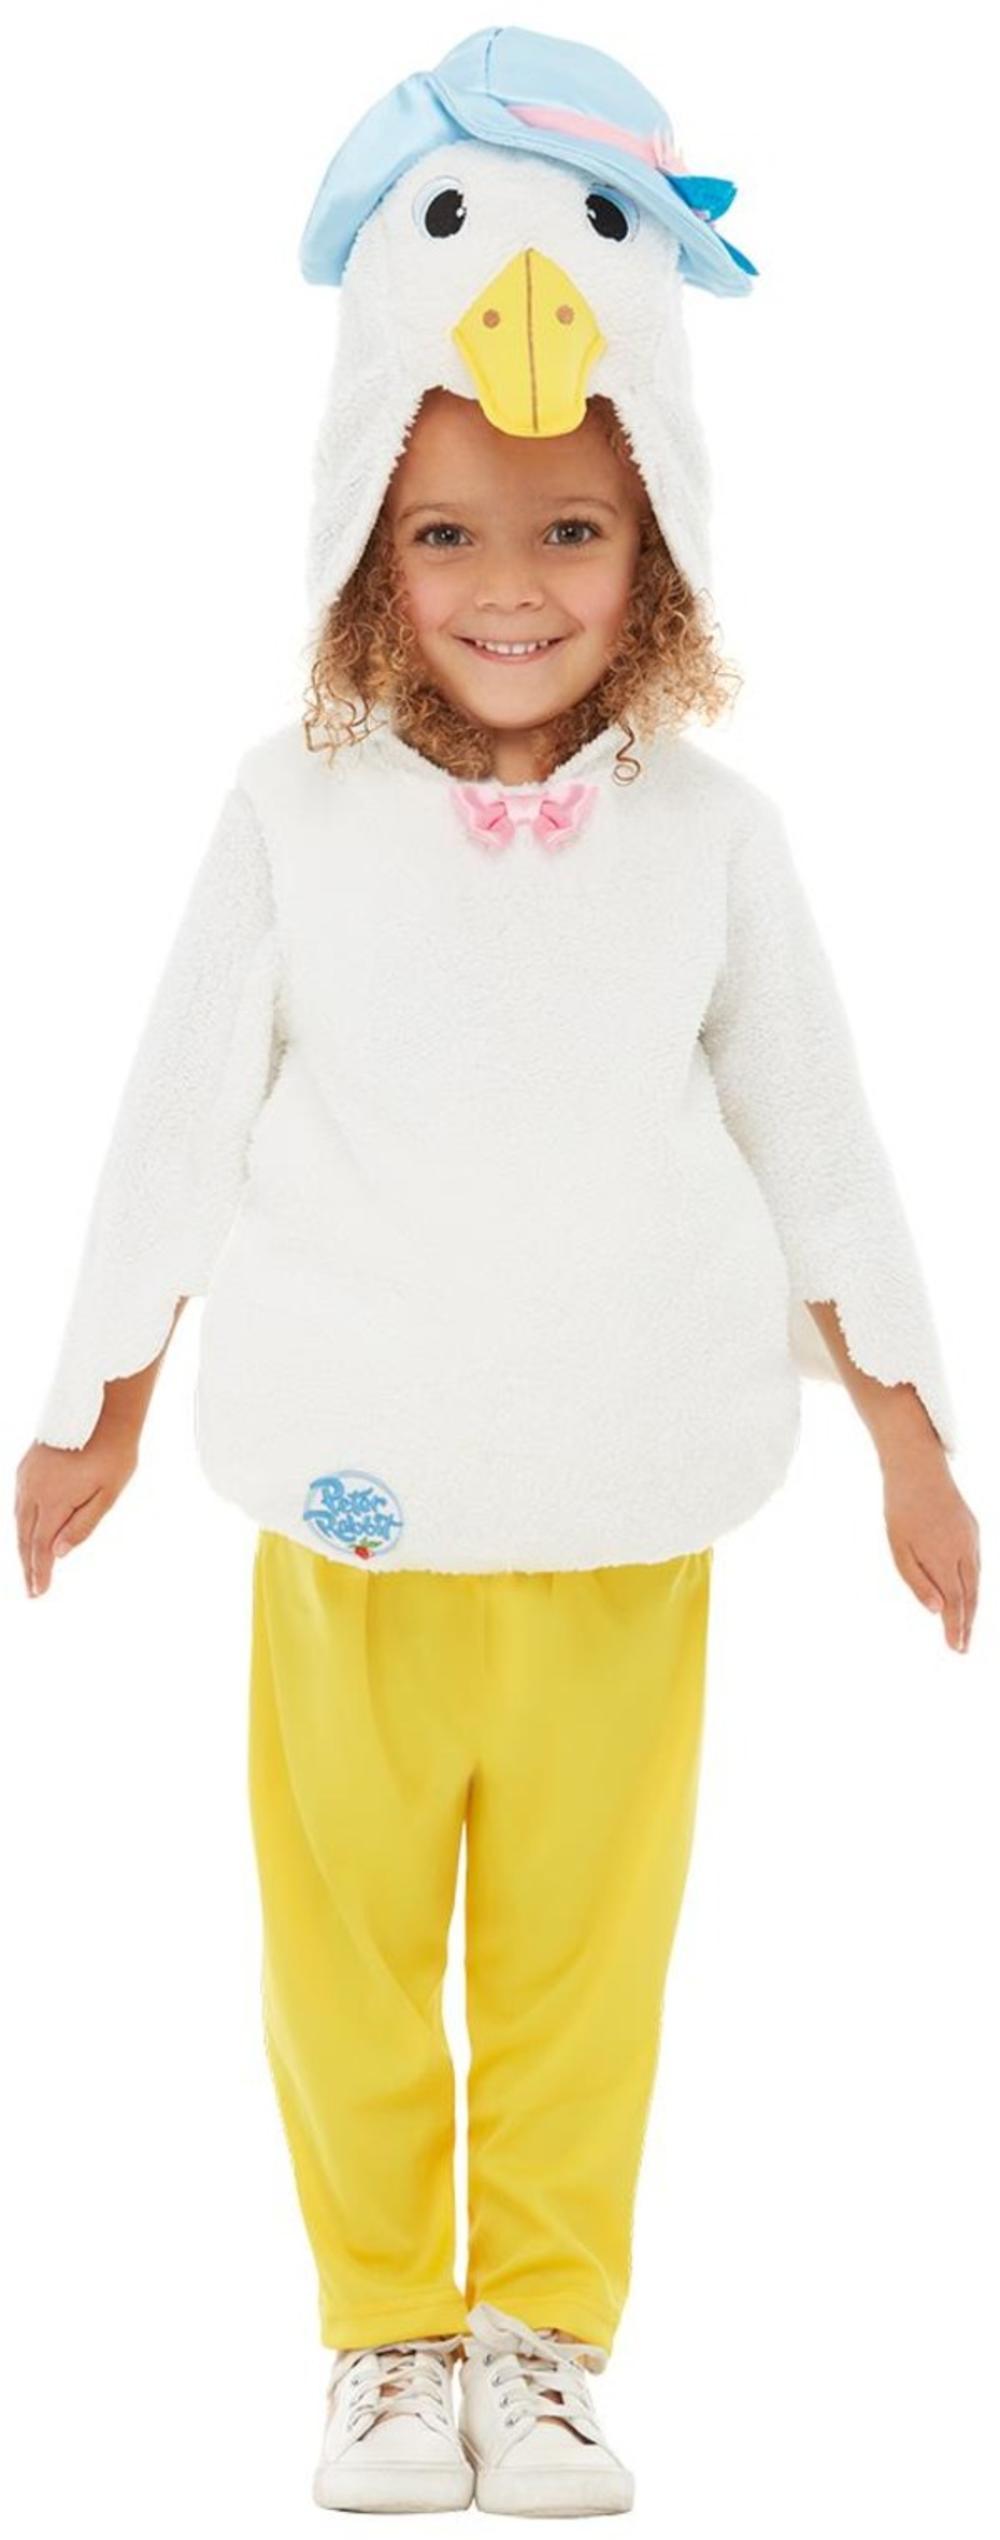 Deluxe Jemima Puddle-Duck Costume